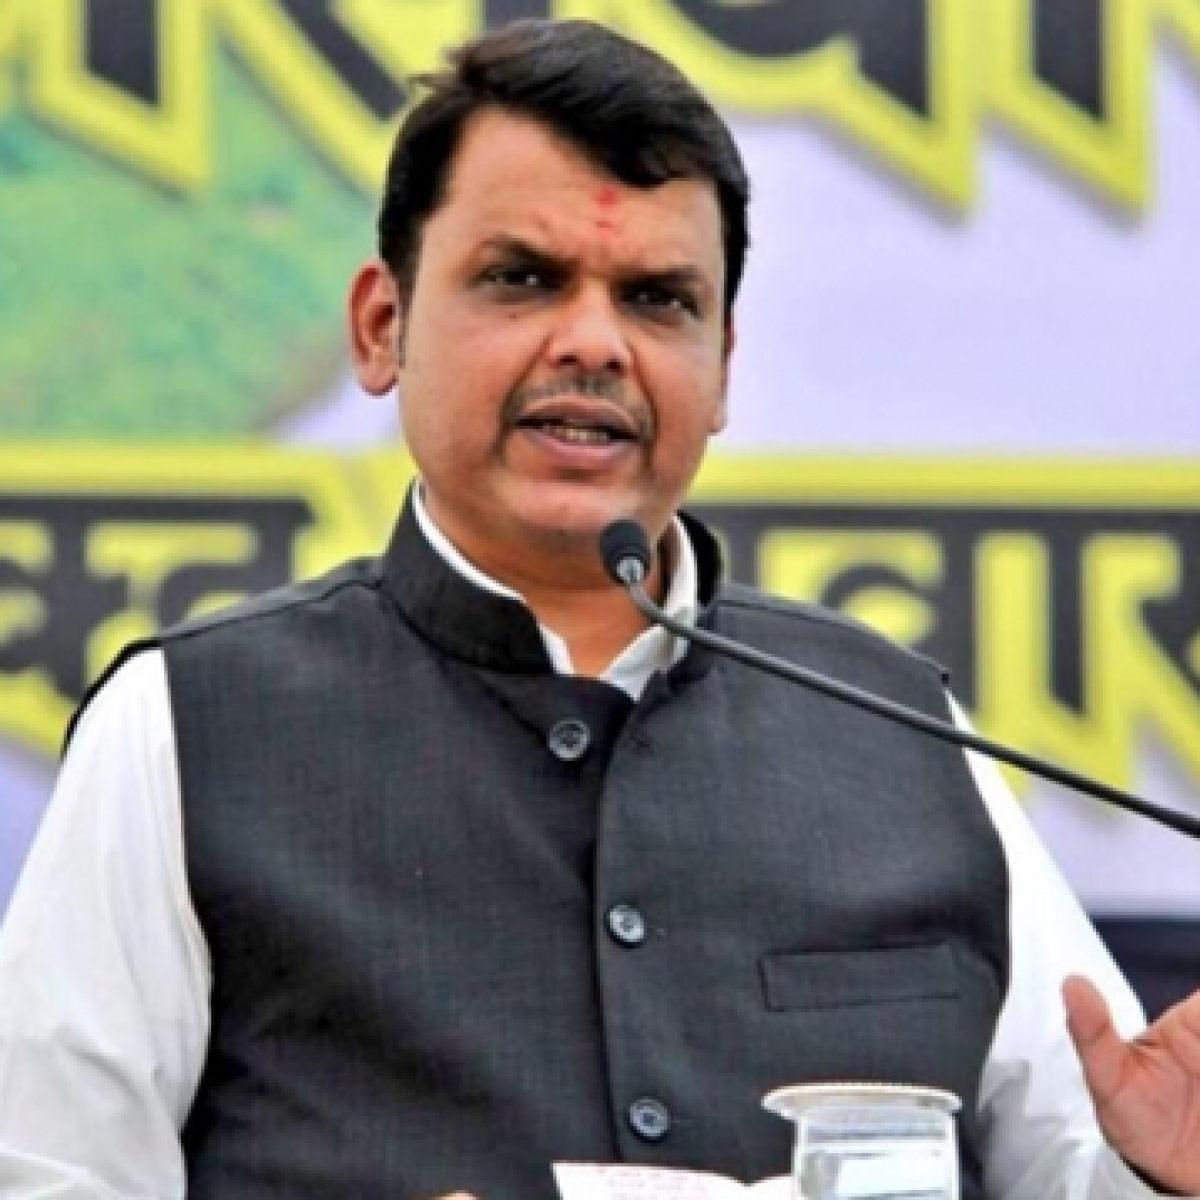 Latest coronavirus update: Proactive approach needed to tackle virus spread, says Devendra Fadnavis